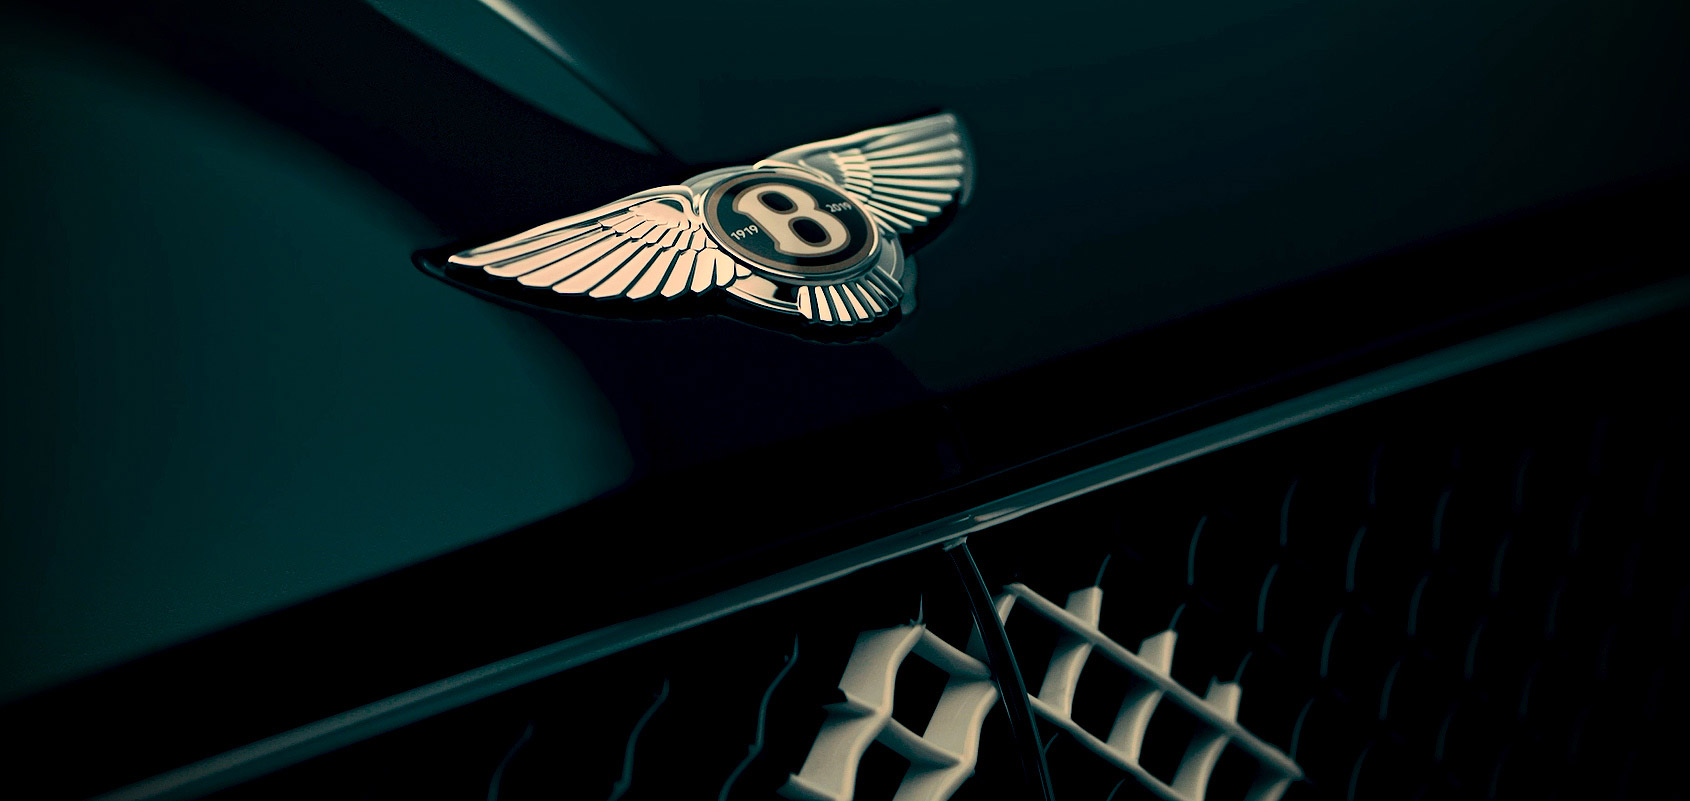 Image-1---Bentley-Centenary-Special-Edition